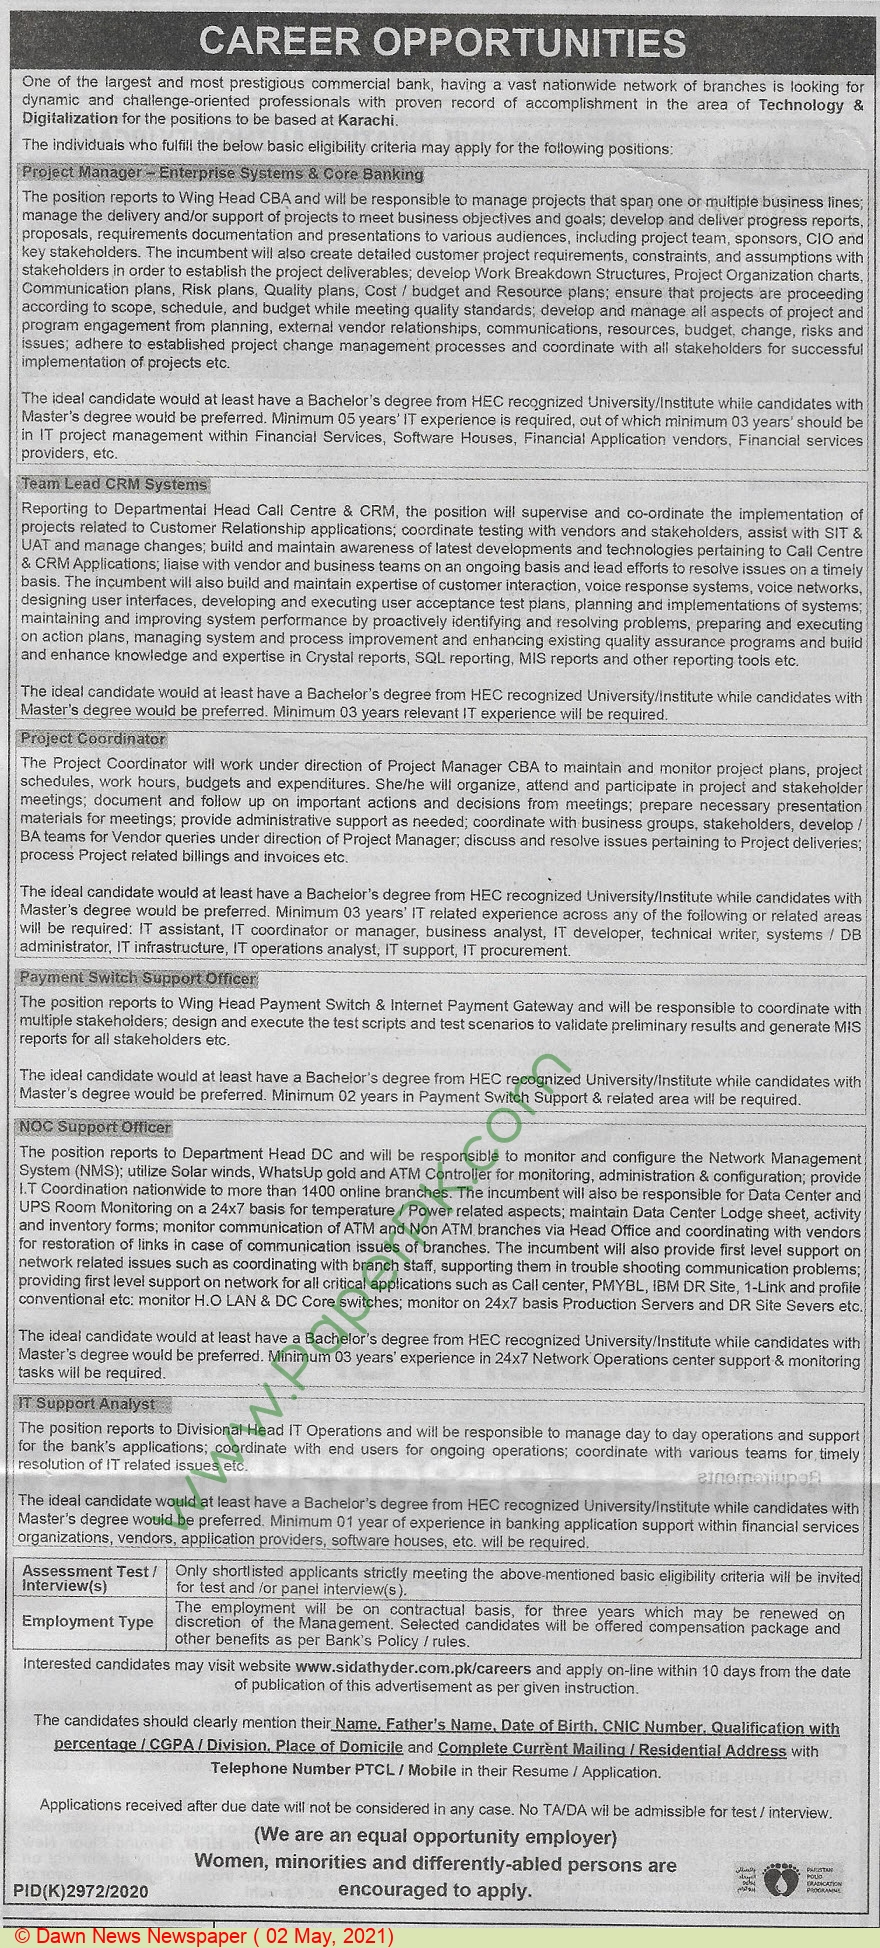 Project Coordinator jobs in Karachi at Karachi Based Company on 2021-05-02